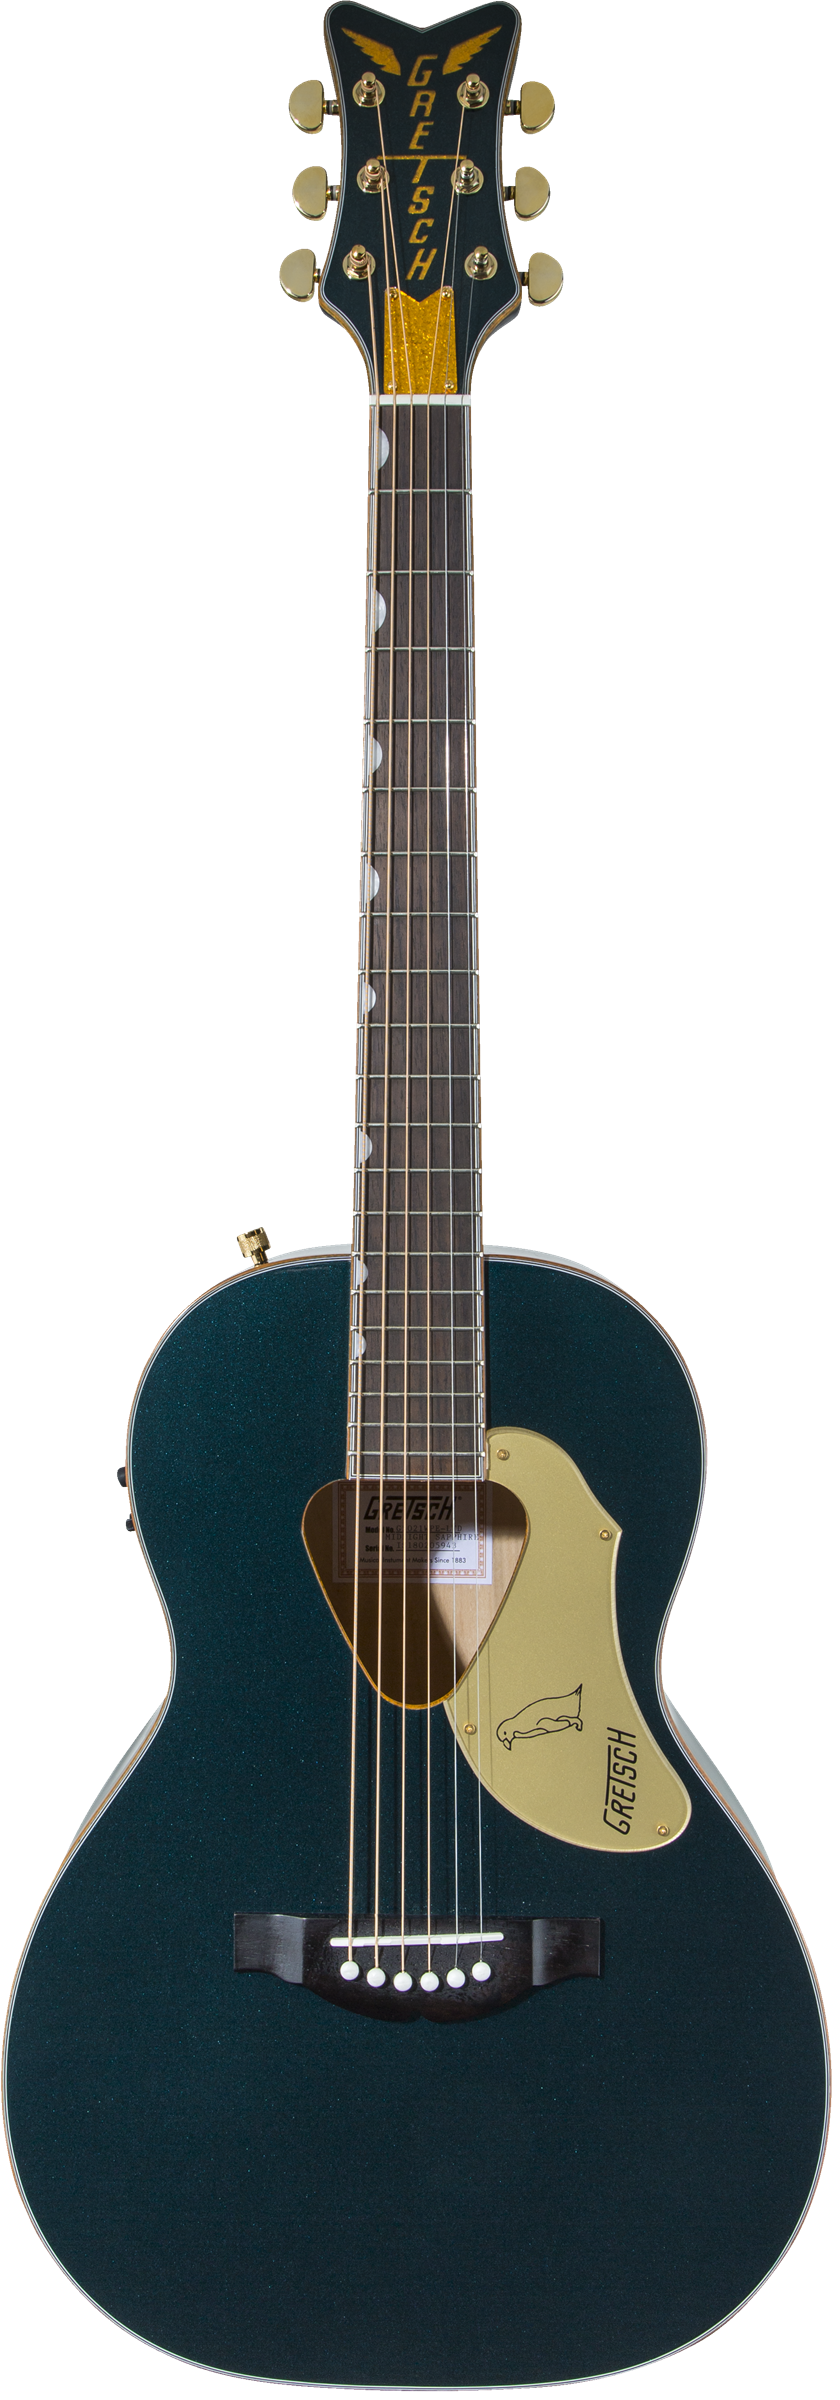 Gretsch G5021E-LTD Rancher Penguin Parlor Acoustic/Electric Guitar in Midnight Sapphire